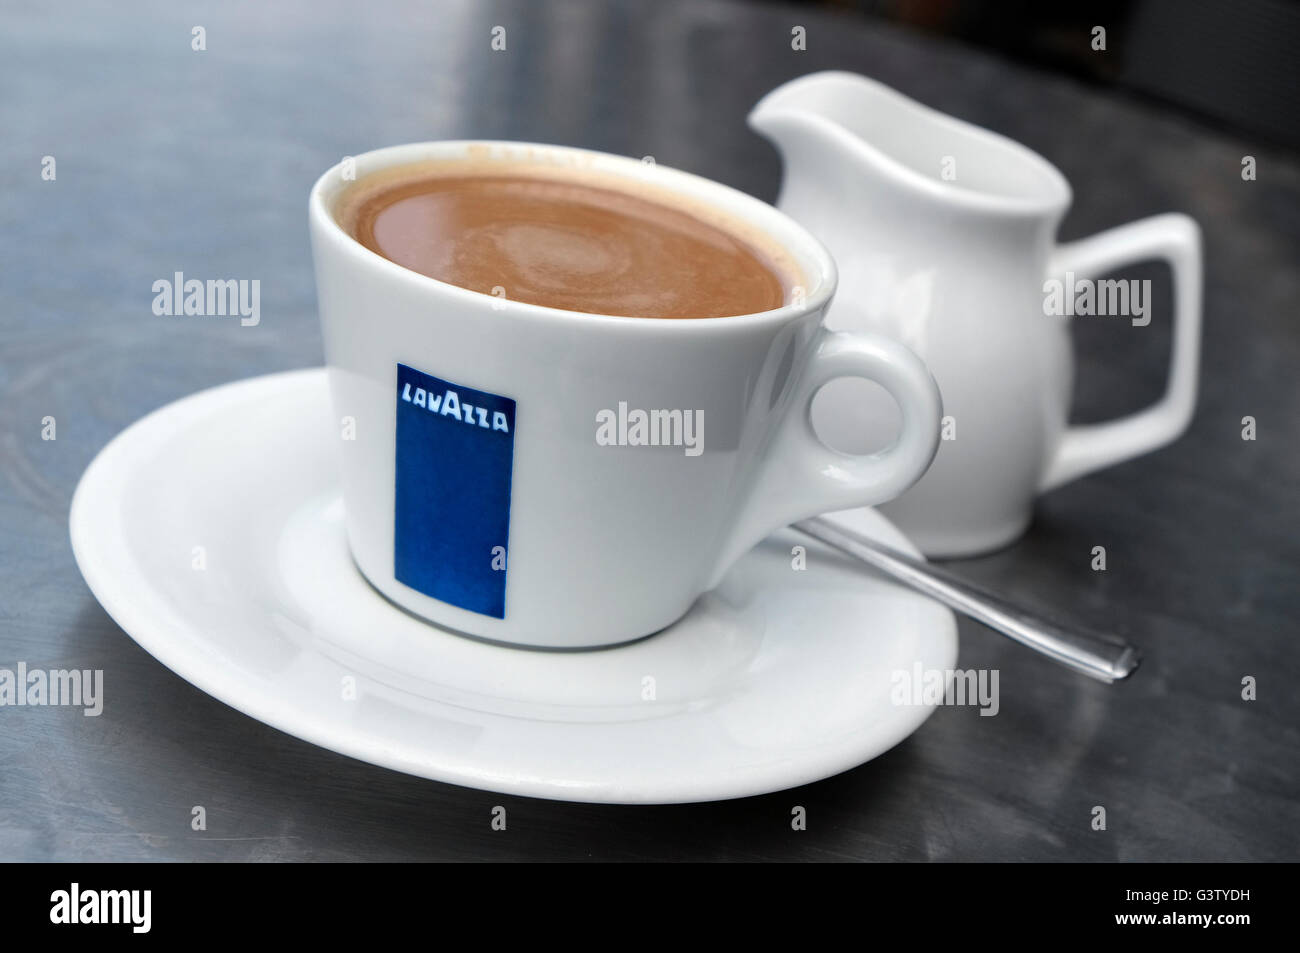 cup of lavazza branded coffee - Stock Image